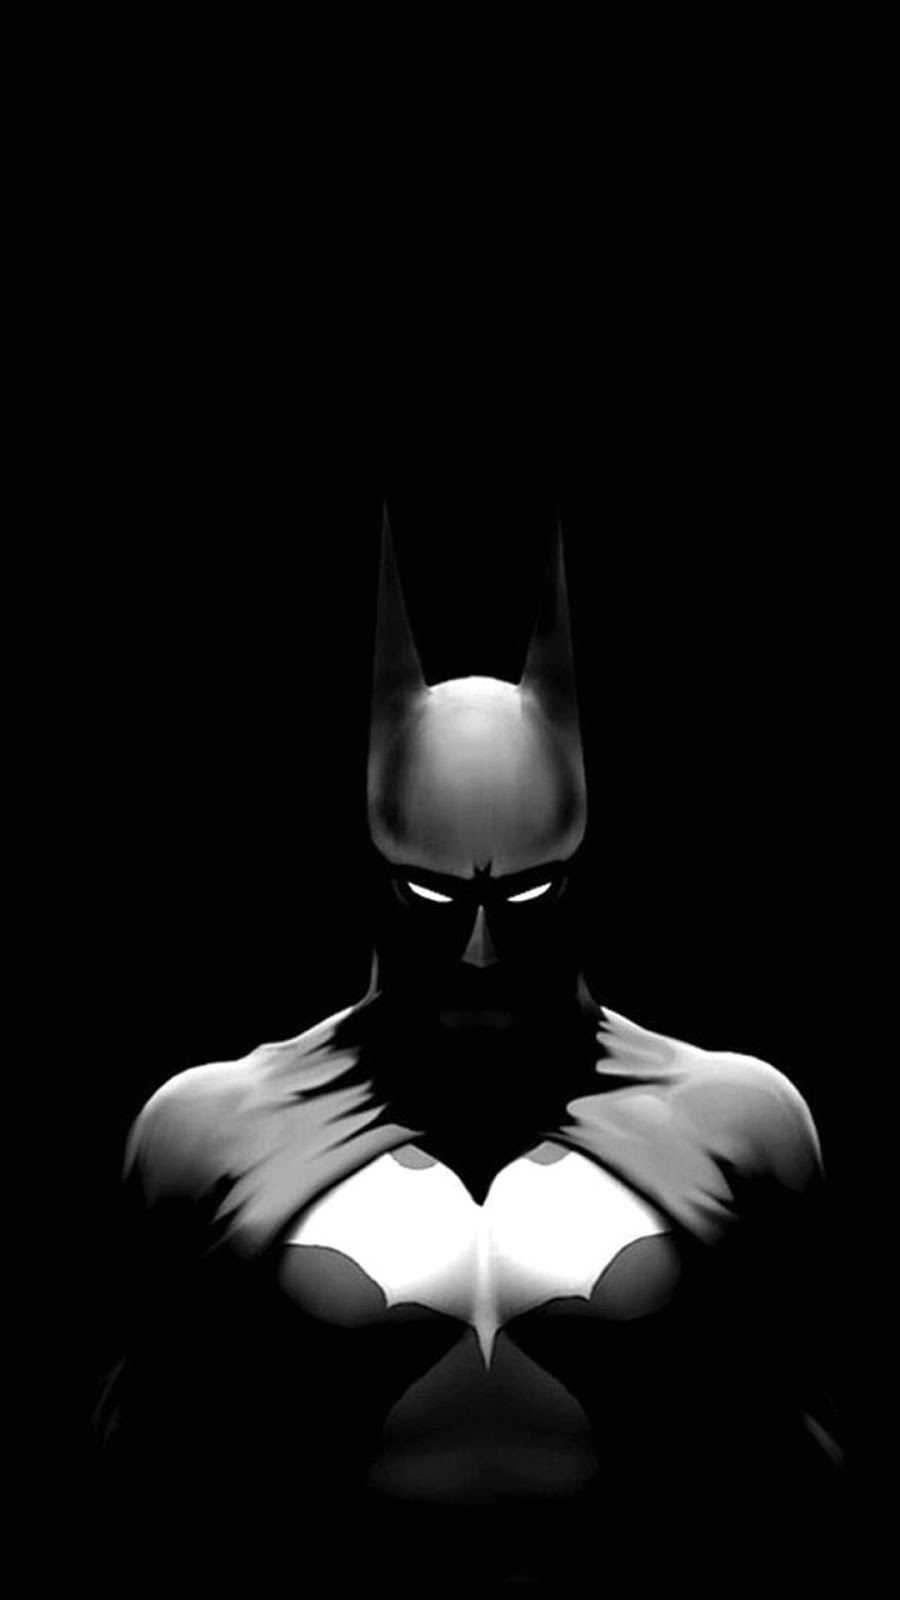 Batman black and white cool awesome wallpaper